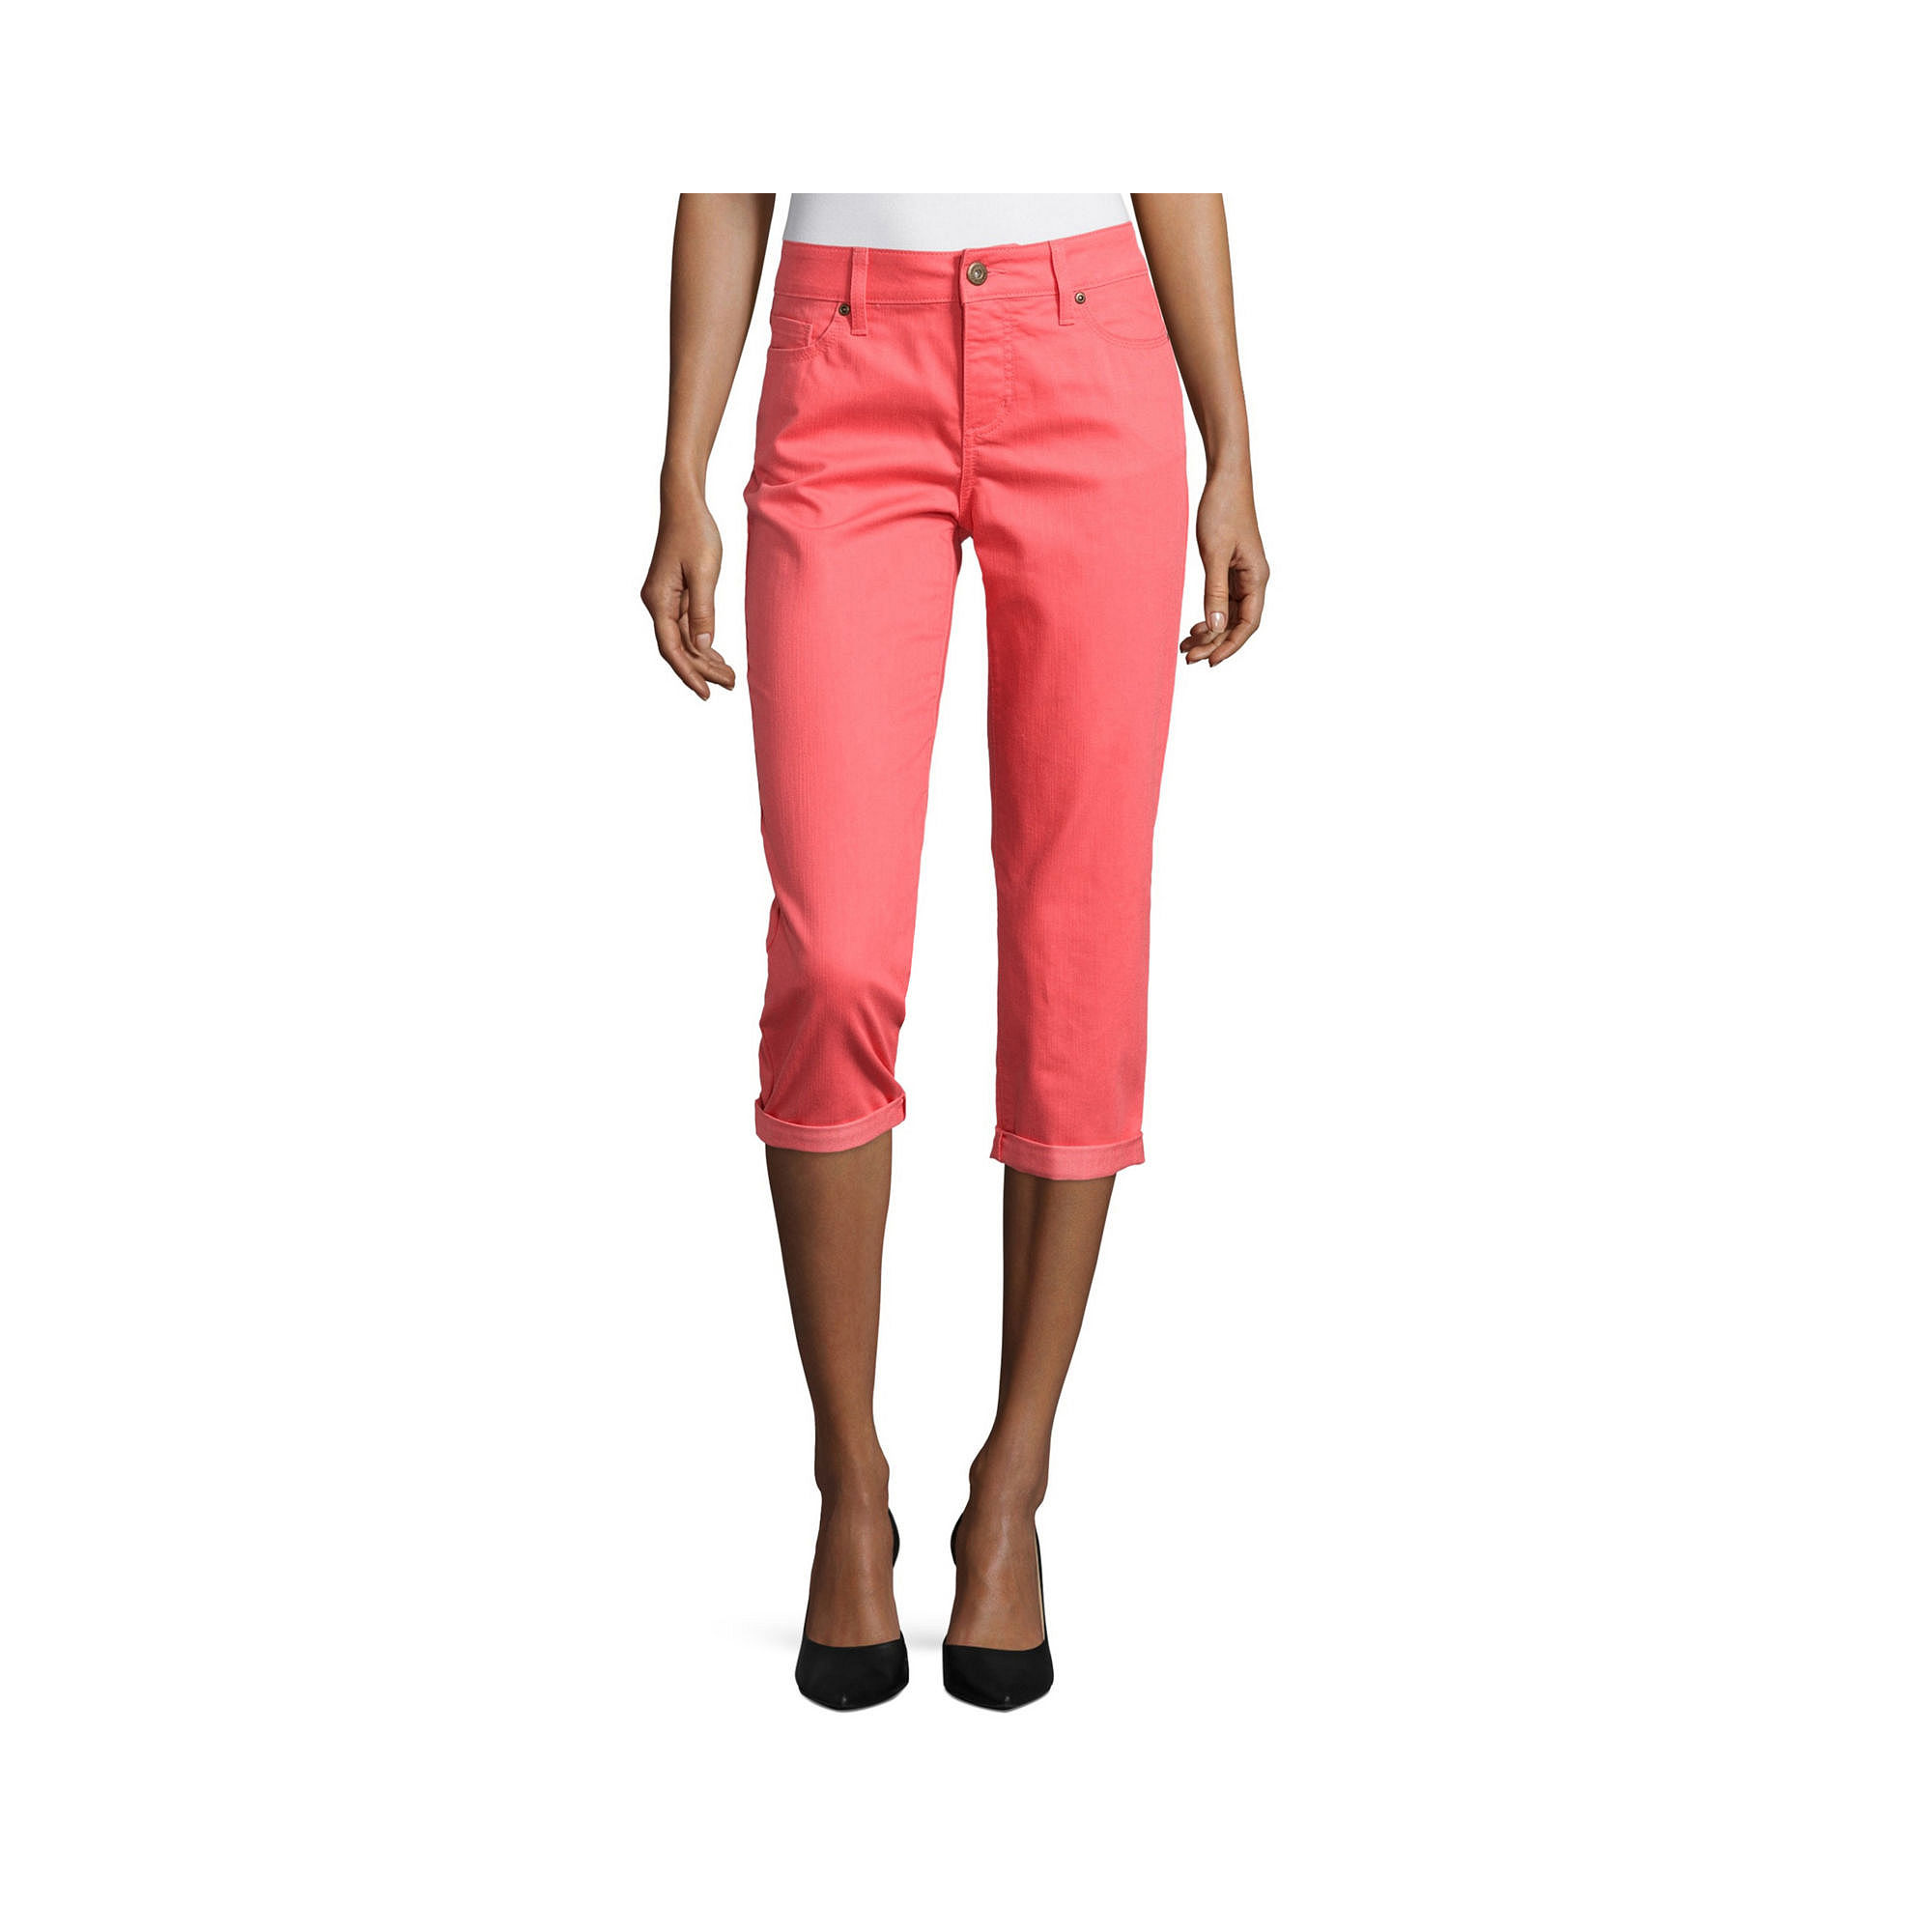 St. John's Bay Secretly Slender Denim Capri Pant